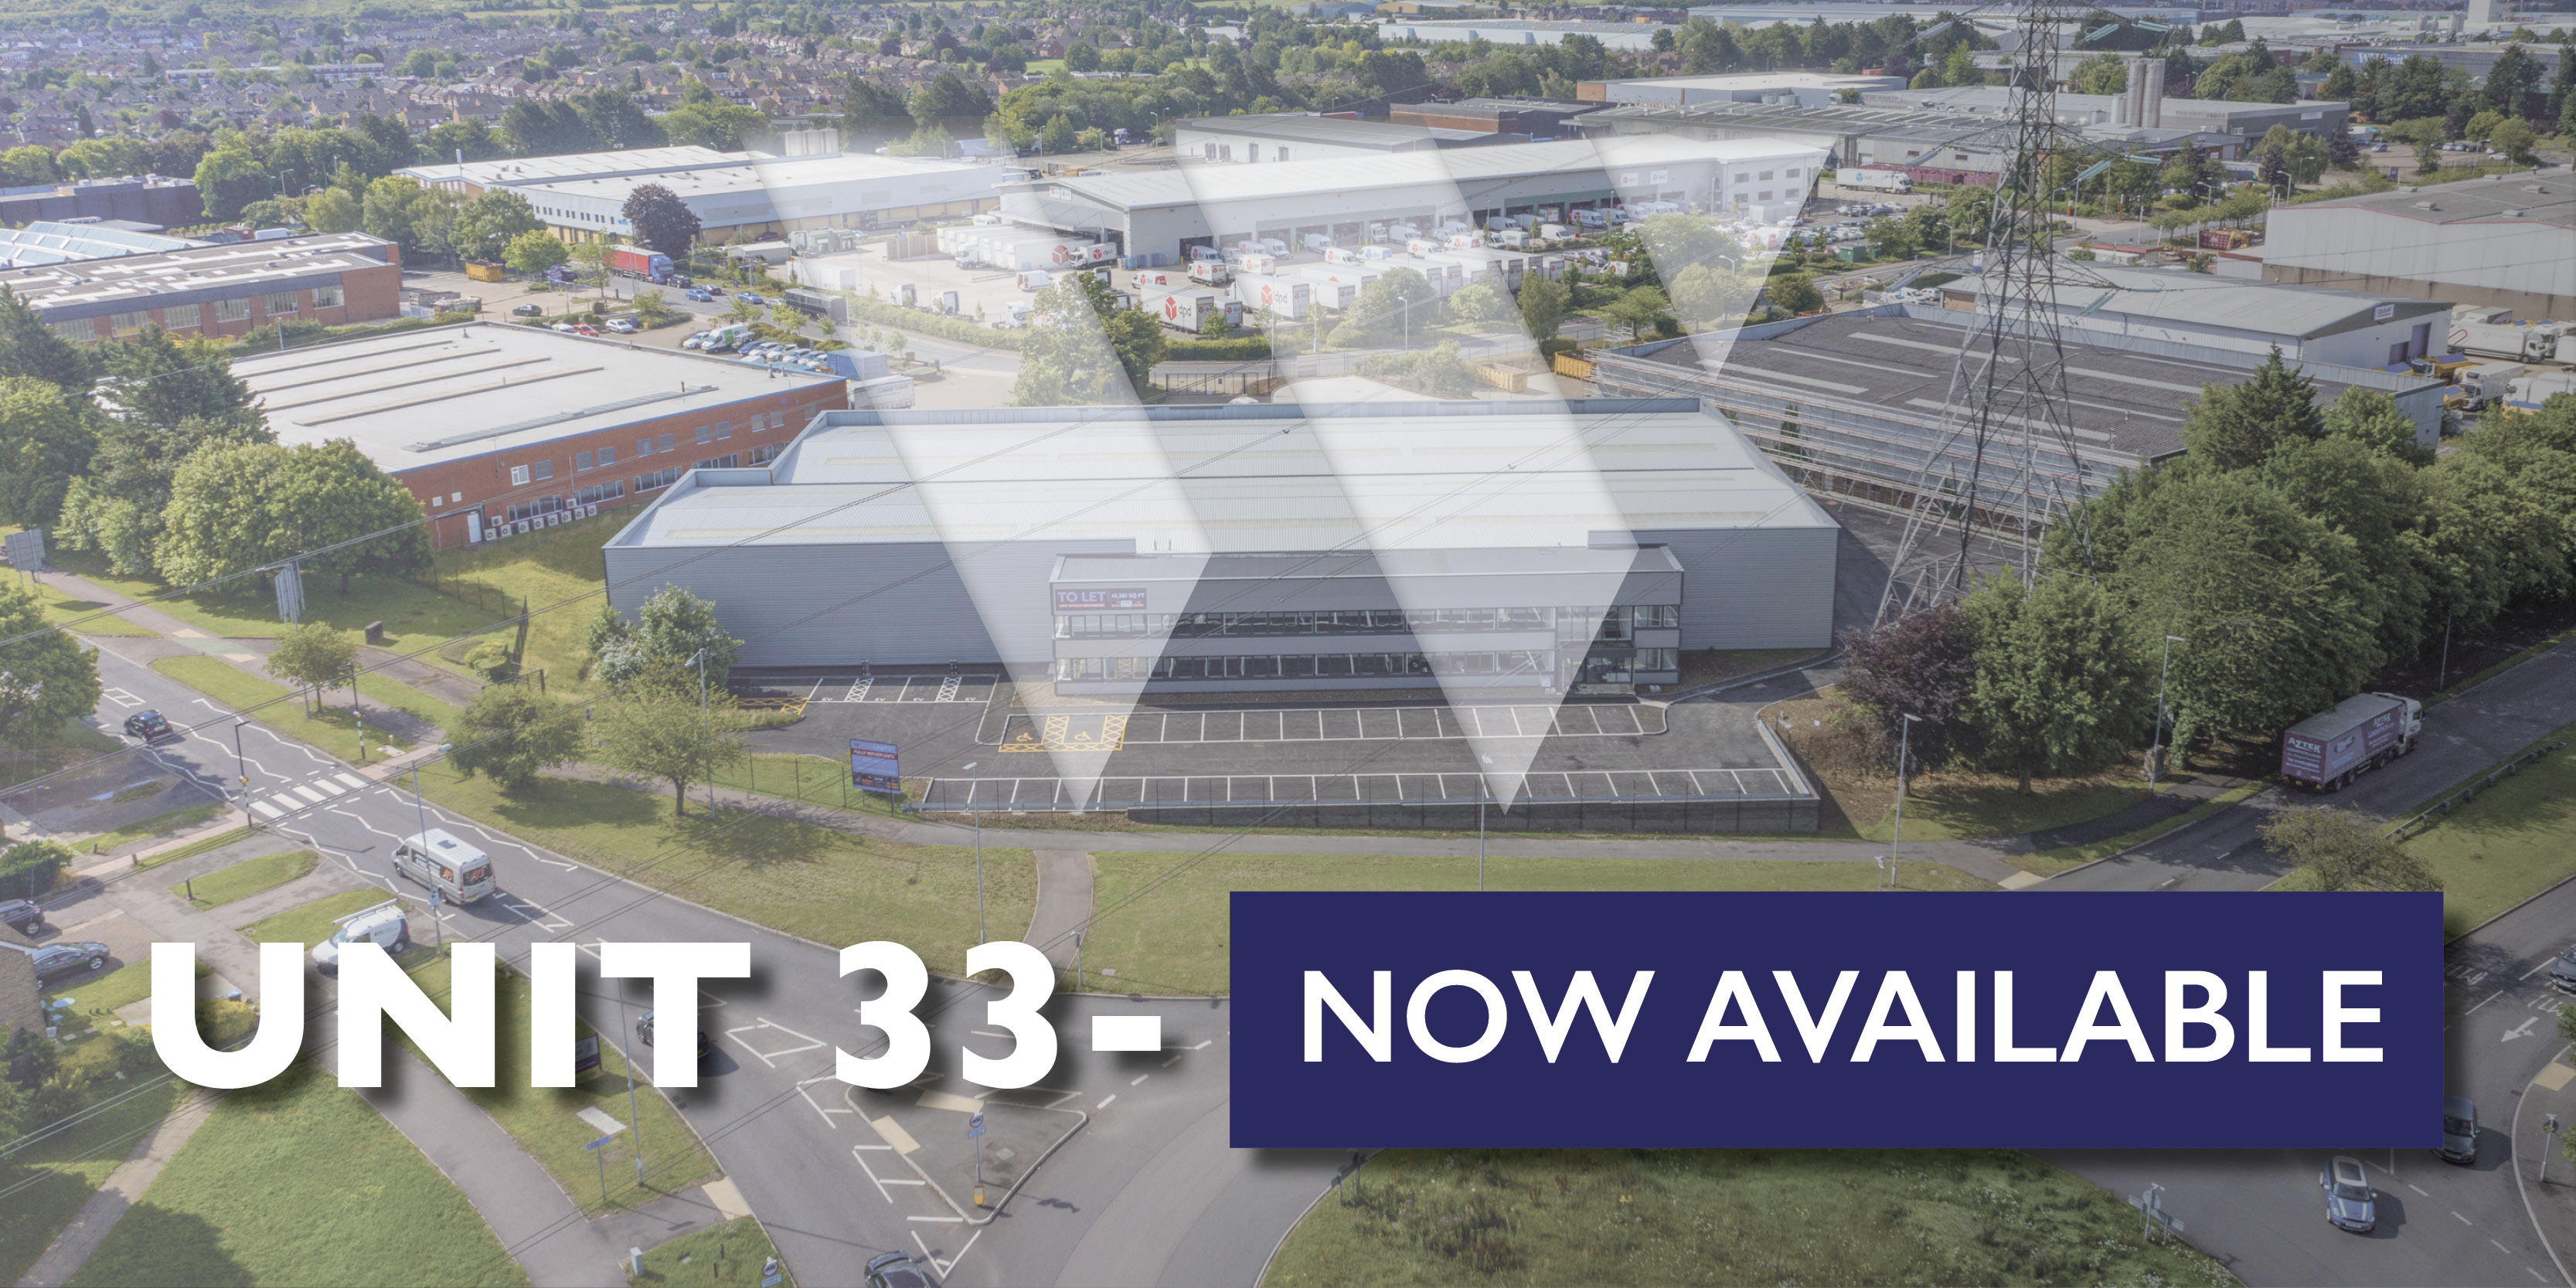 Unit 33 – NOW AVAILABLE